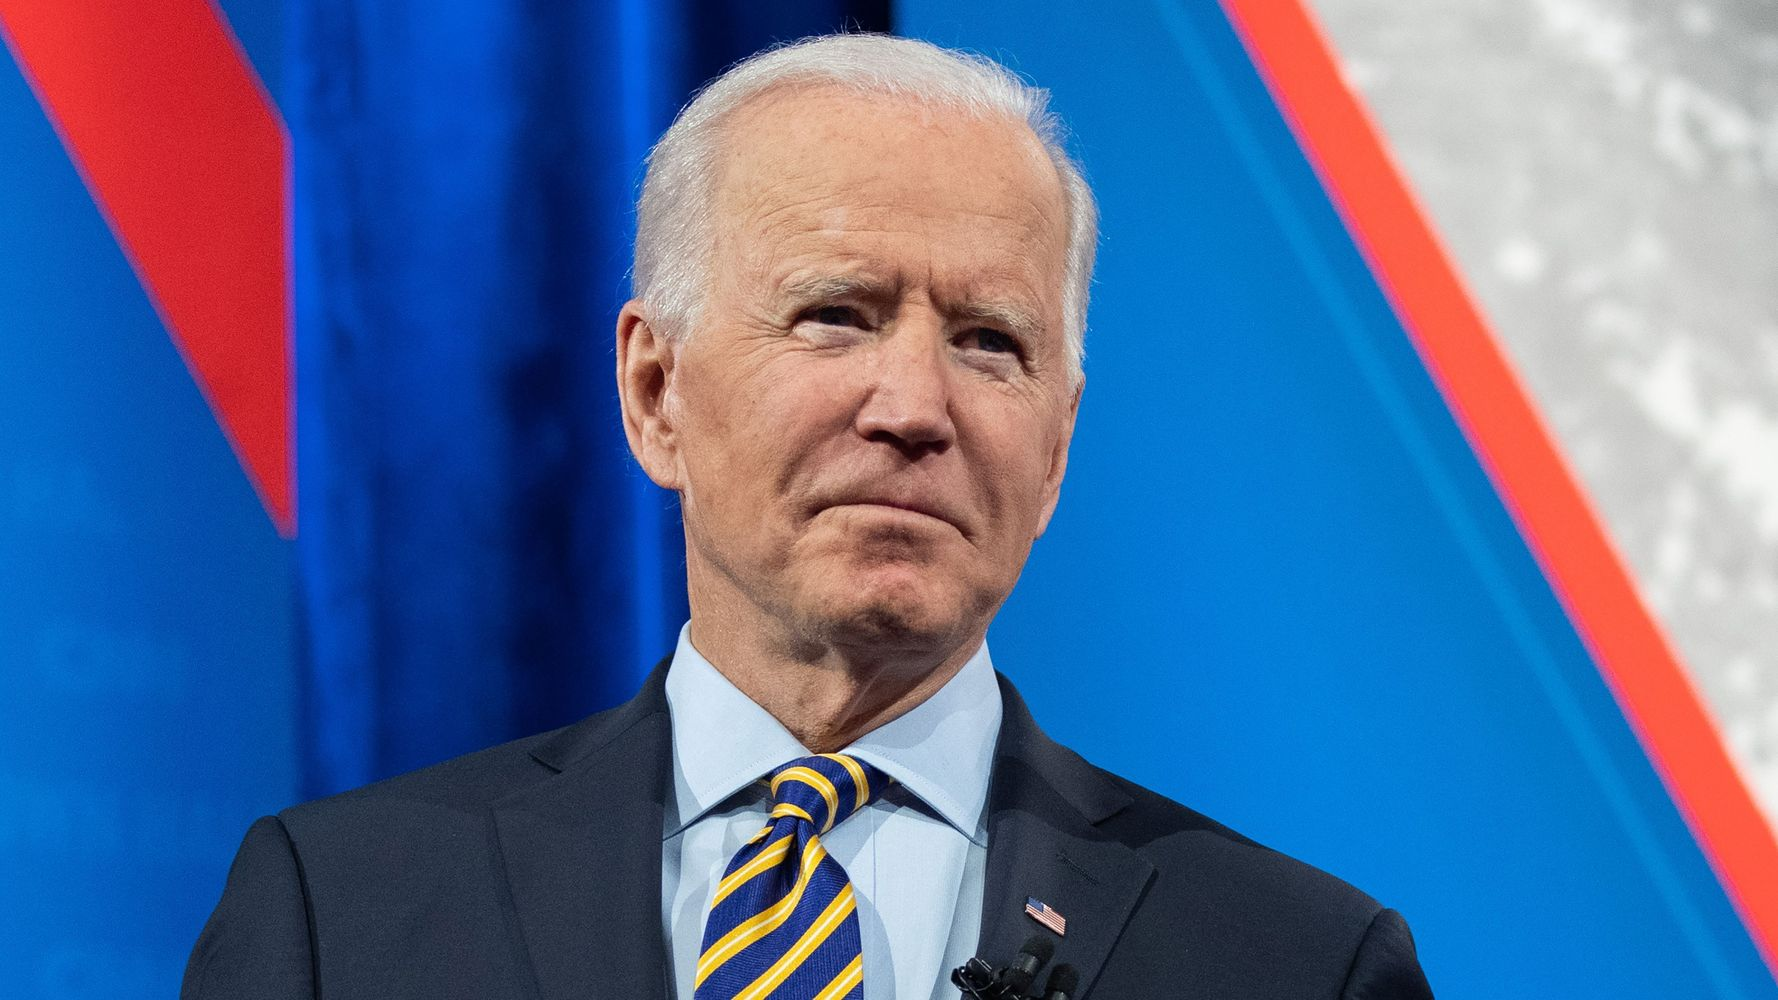 Unlike Trump, Biden Promises Texas Storm Relief Without Any Threats